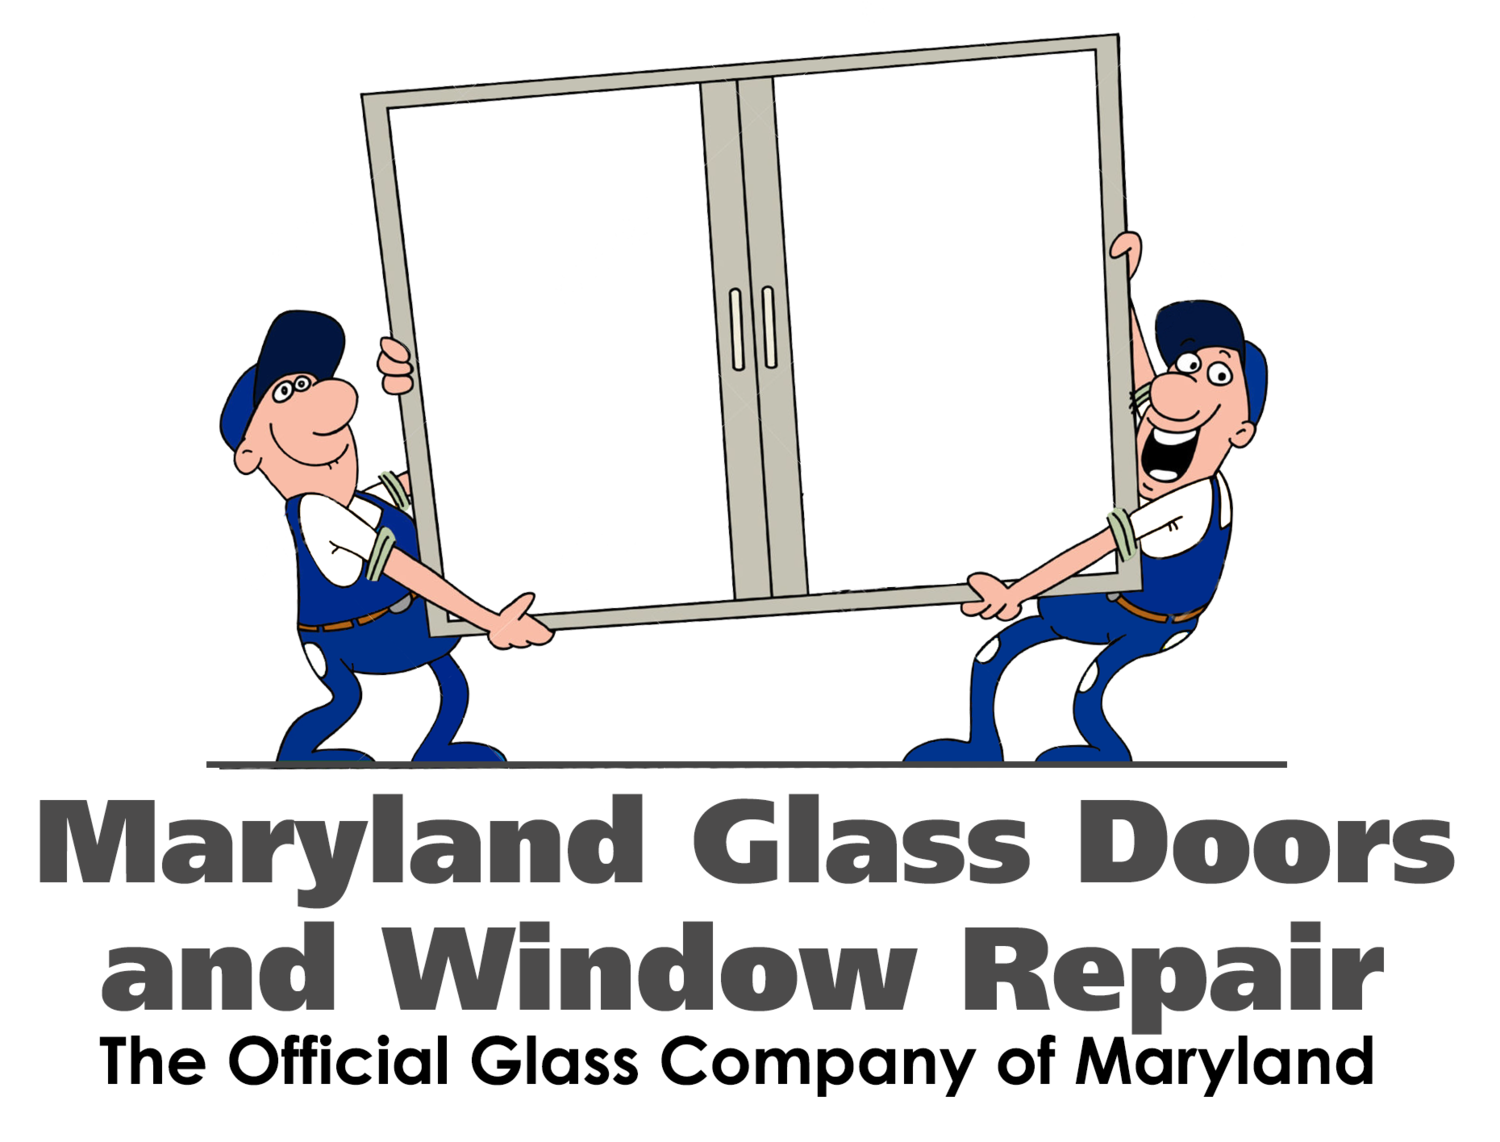 Maryland Glass Doors and Window Repair | (301) 615-0439 | Glass Repair - Glass Replacement - Shower Doors